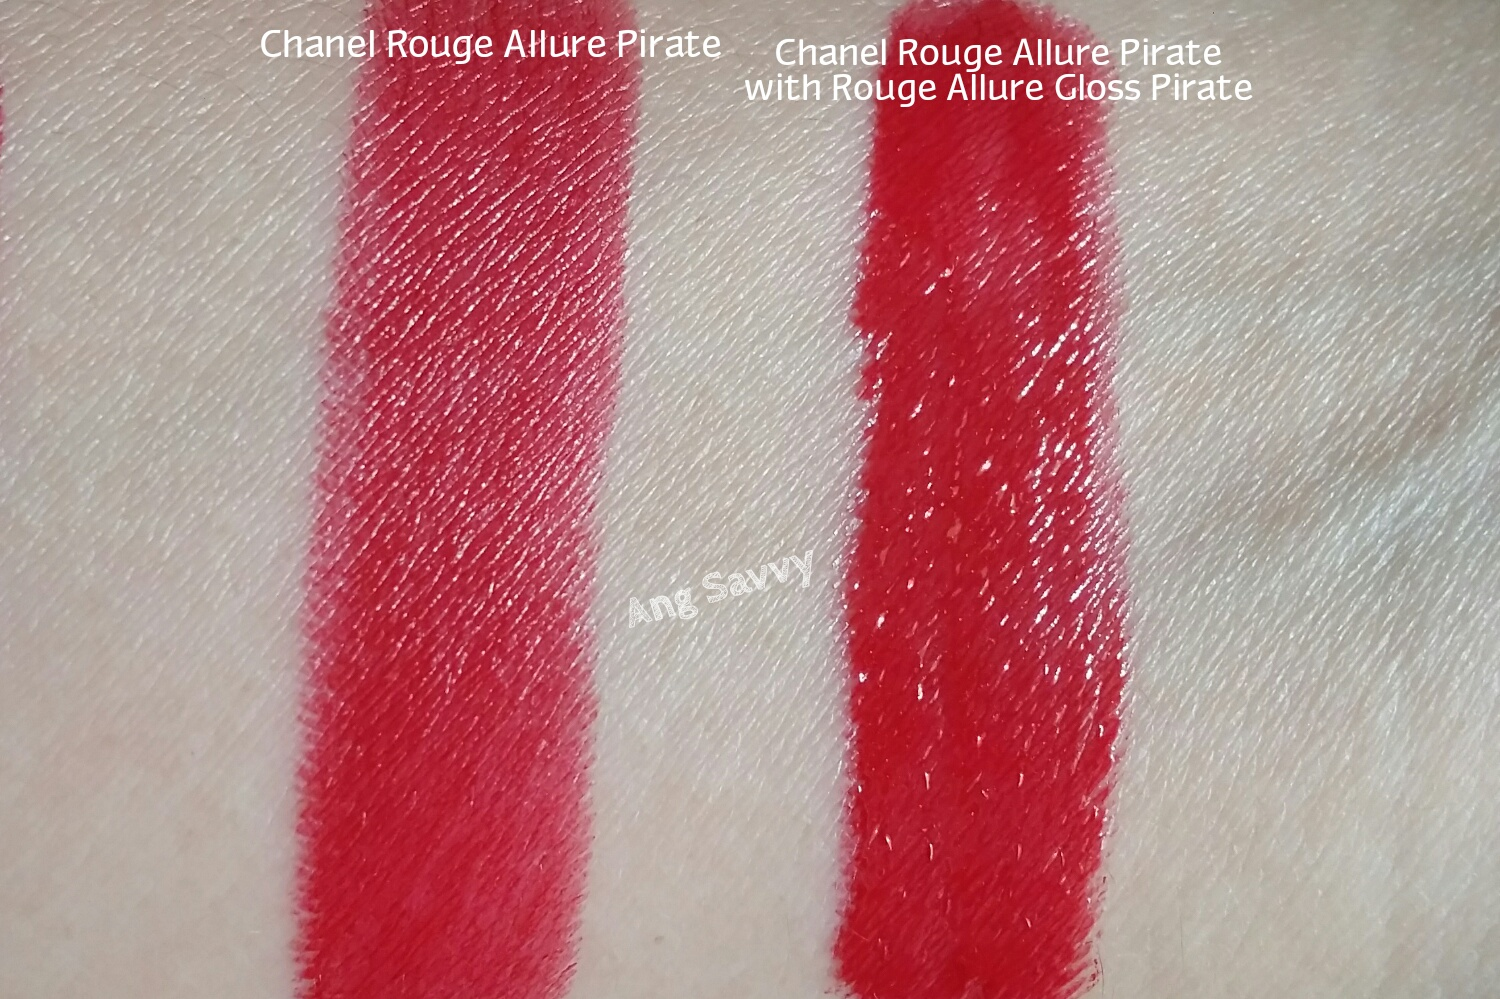 Chanel Rouge Allure 99 Pirate Lipstick Swatch